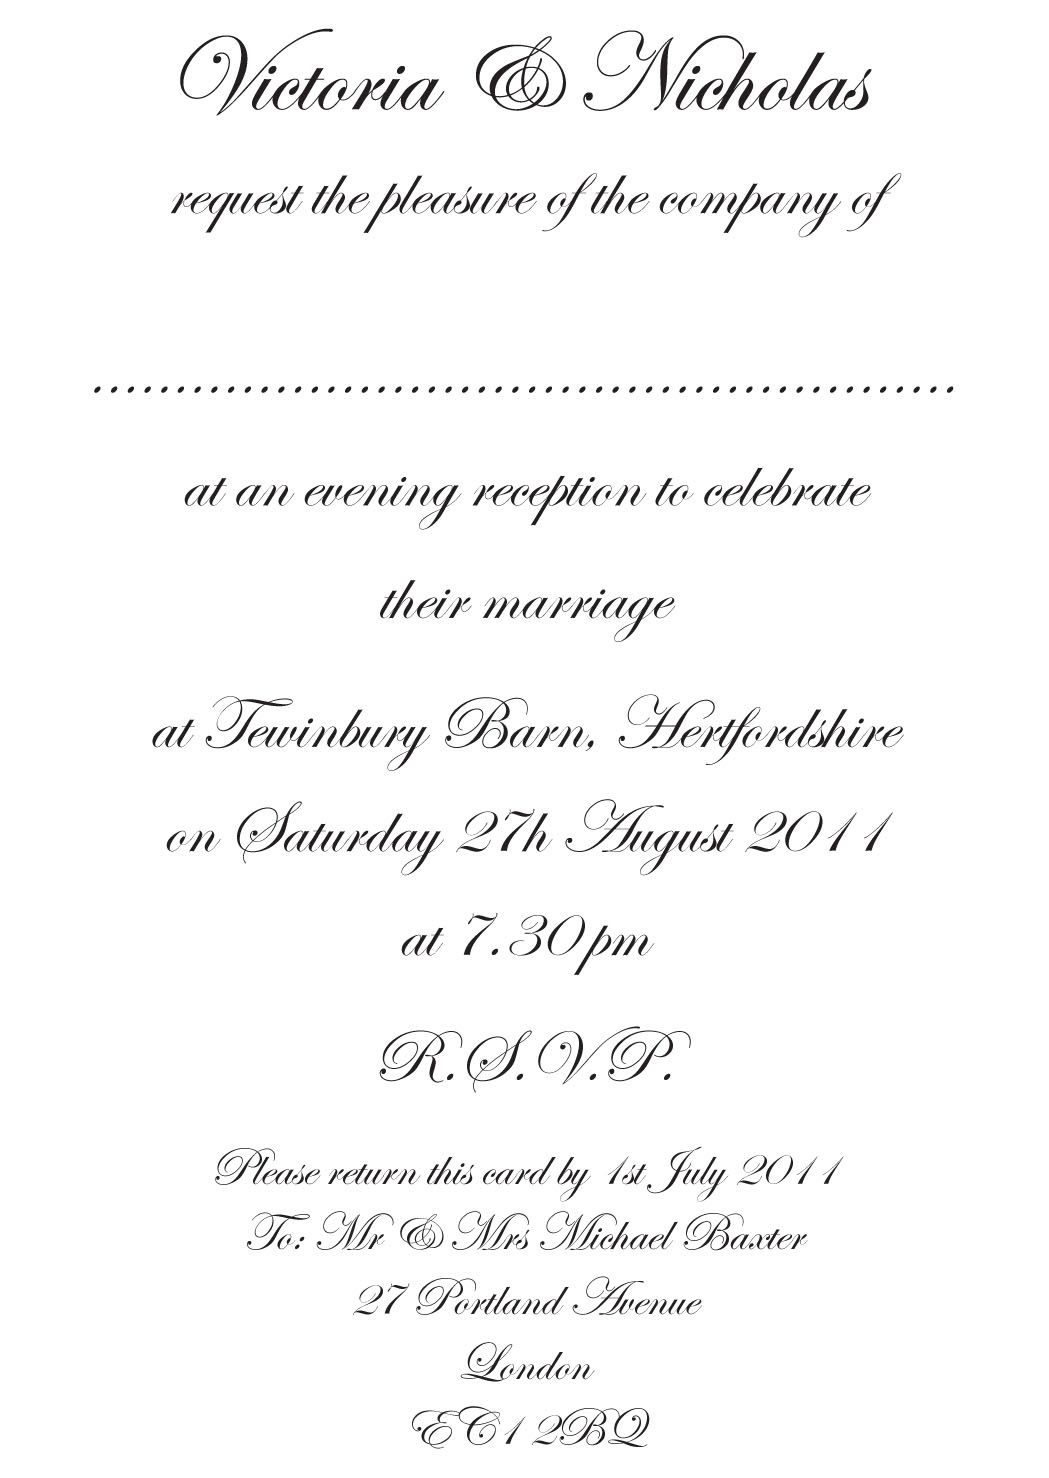 Guide to Wedding Invitations Messages | Invitation wording, Wedding ...